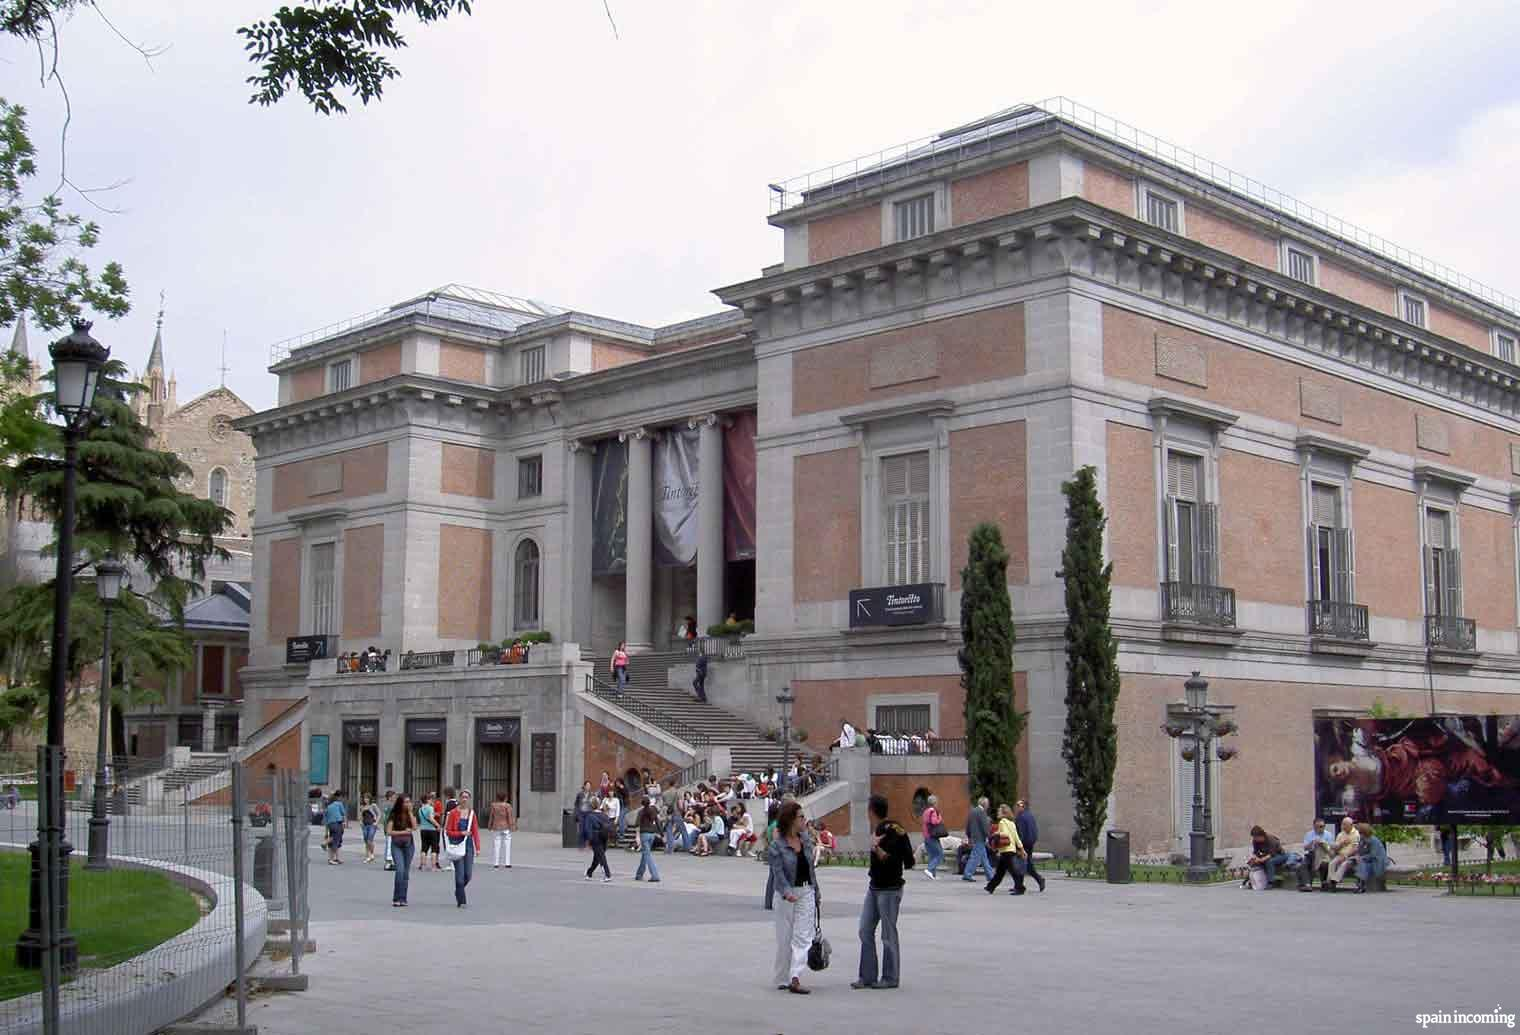 10 ideas for organize your trip to Spain - Museo del Prado